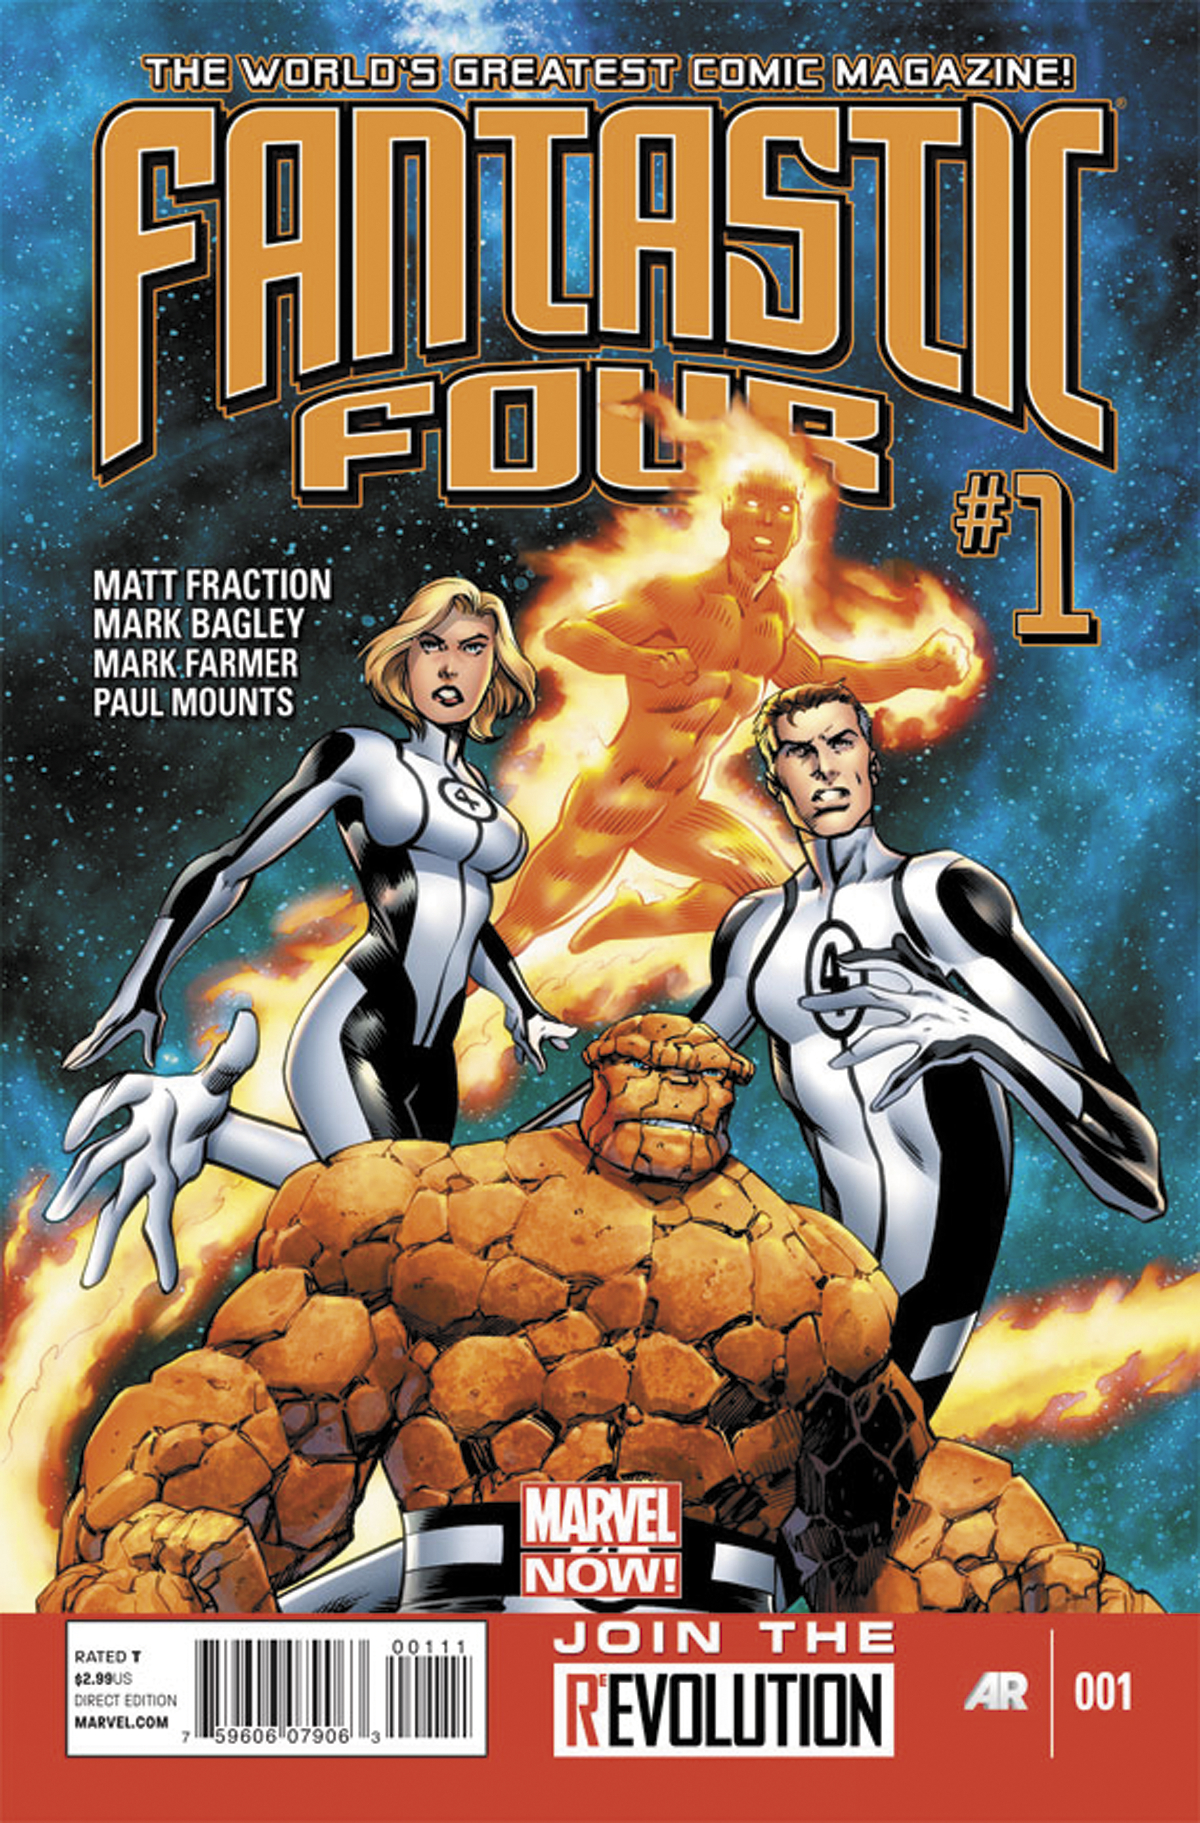 FANTASTIC FOUR #1 NOW